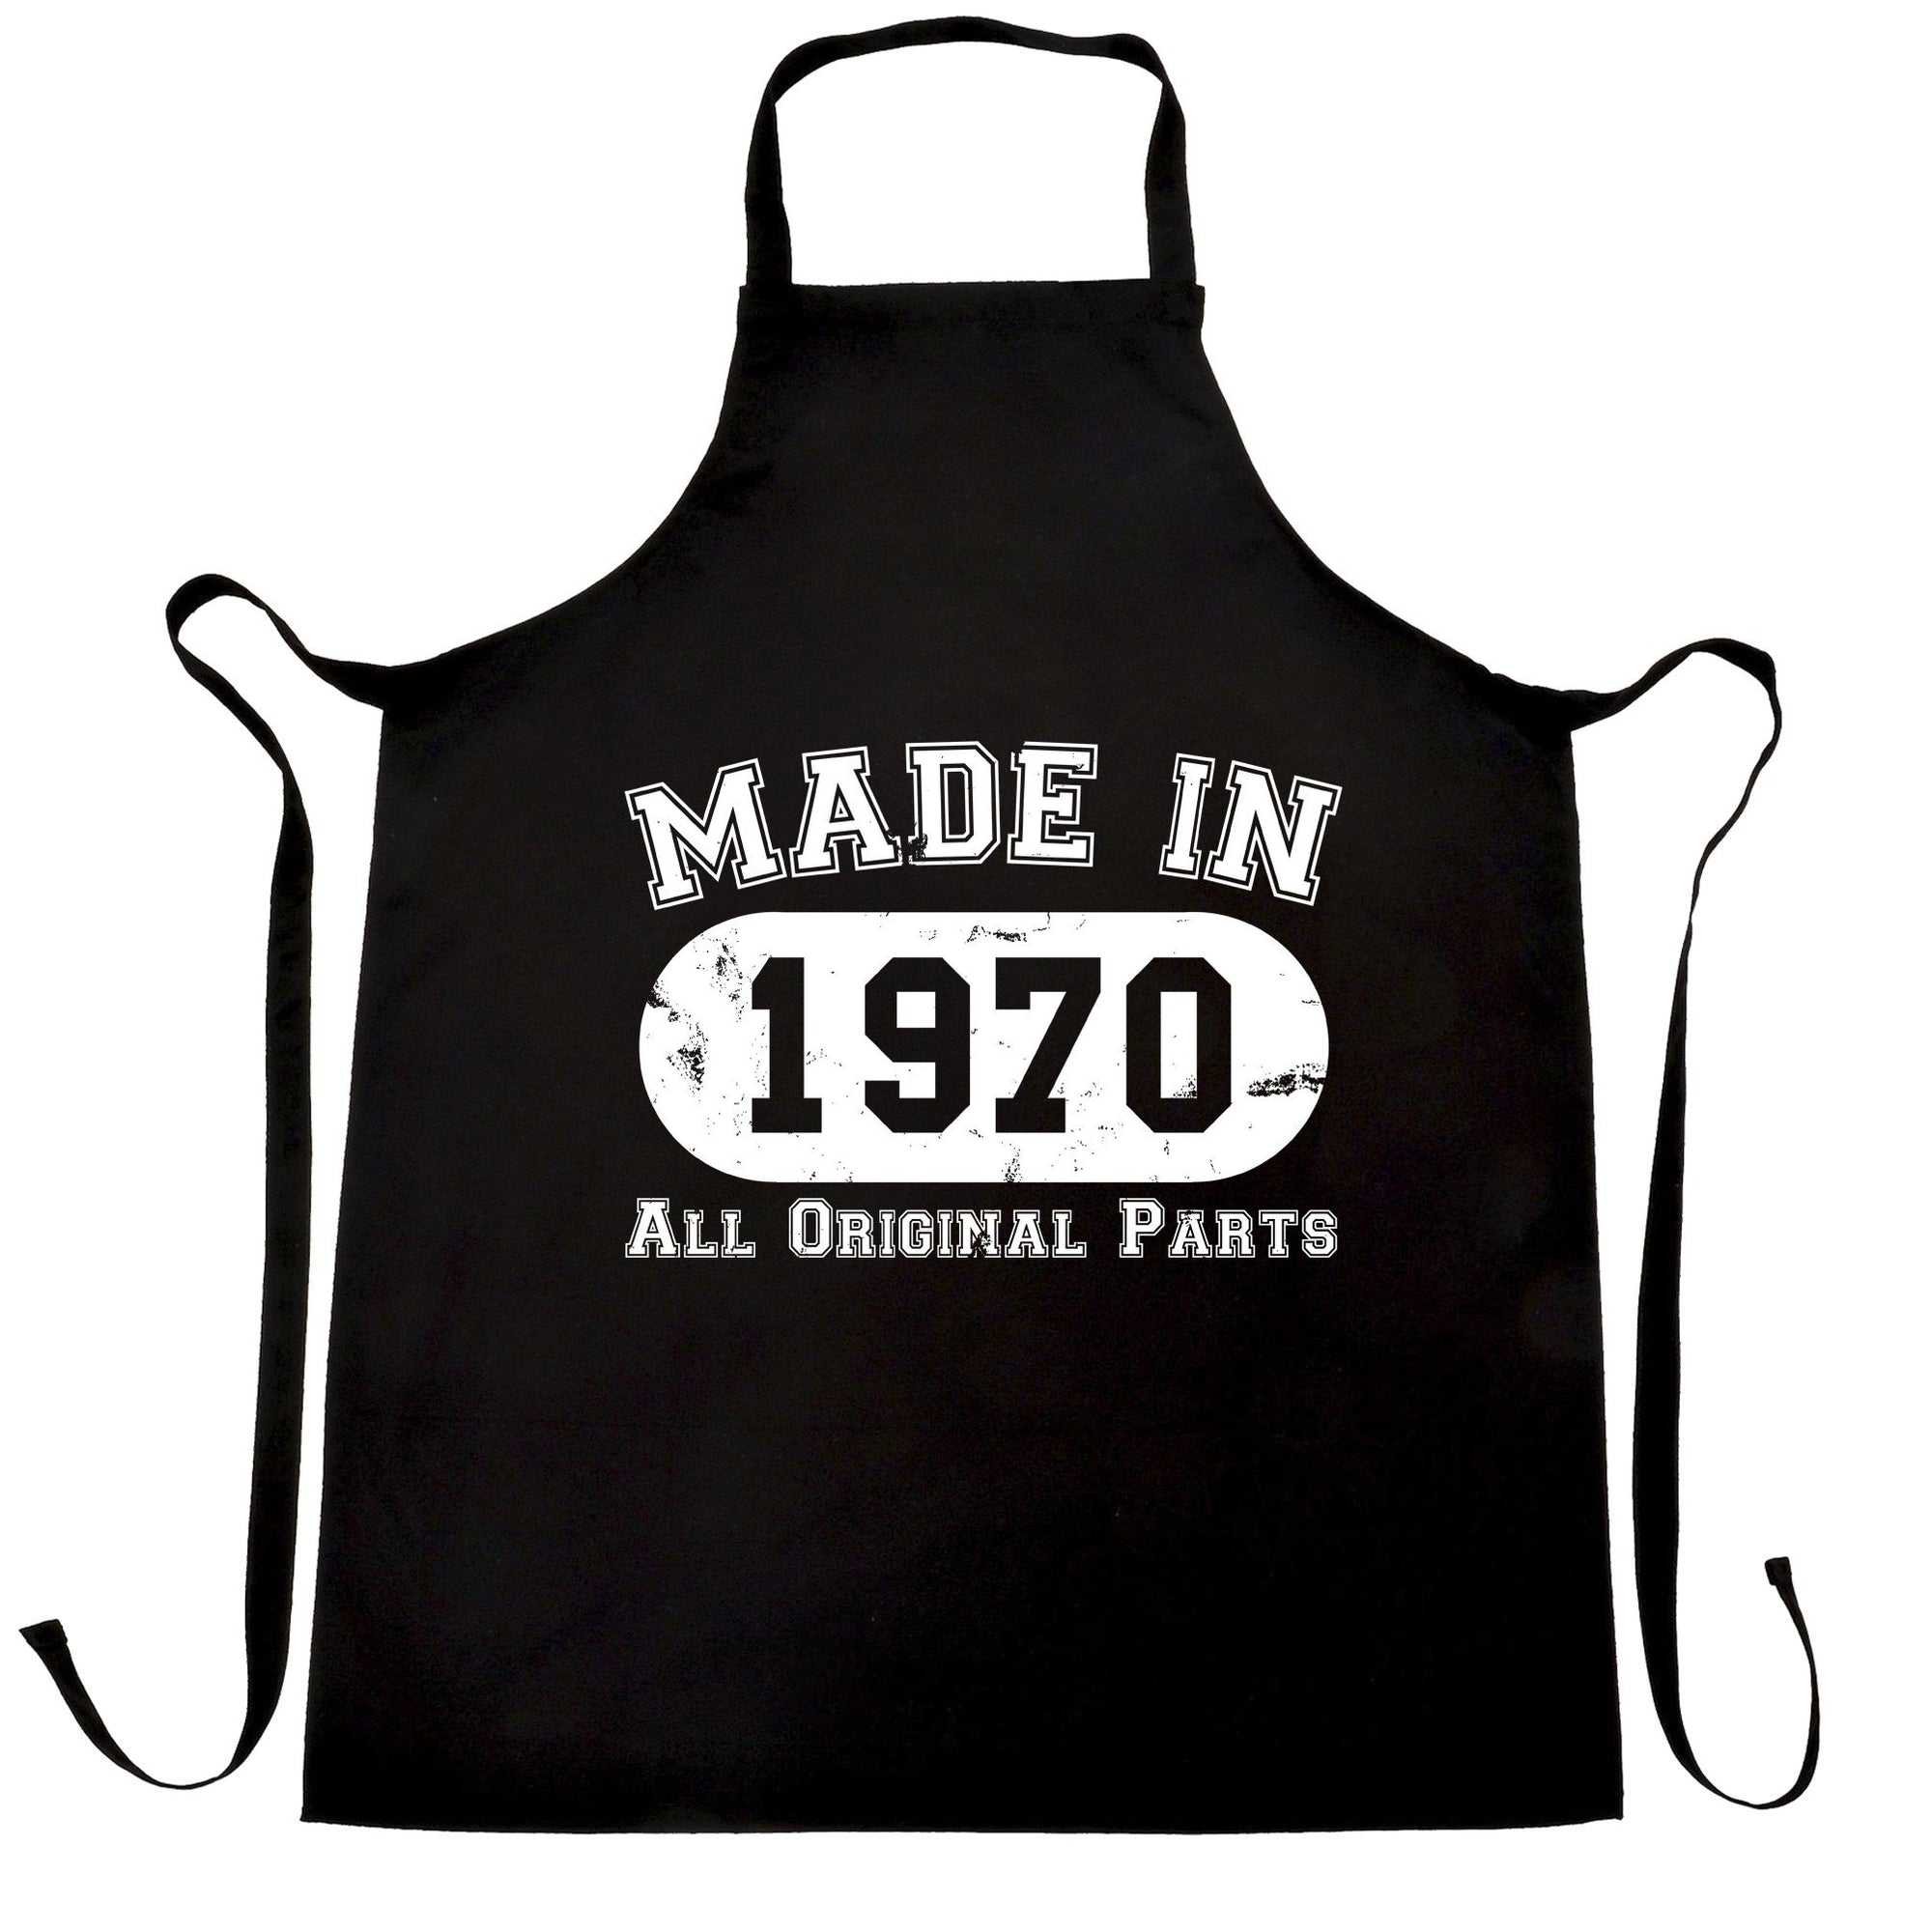 Made in 1970 All Original Parts Apron [Distressed]